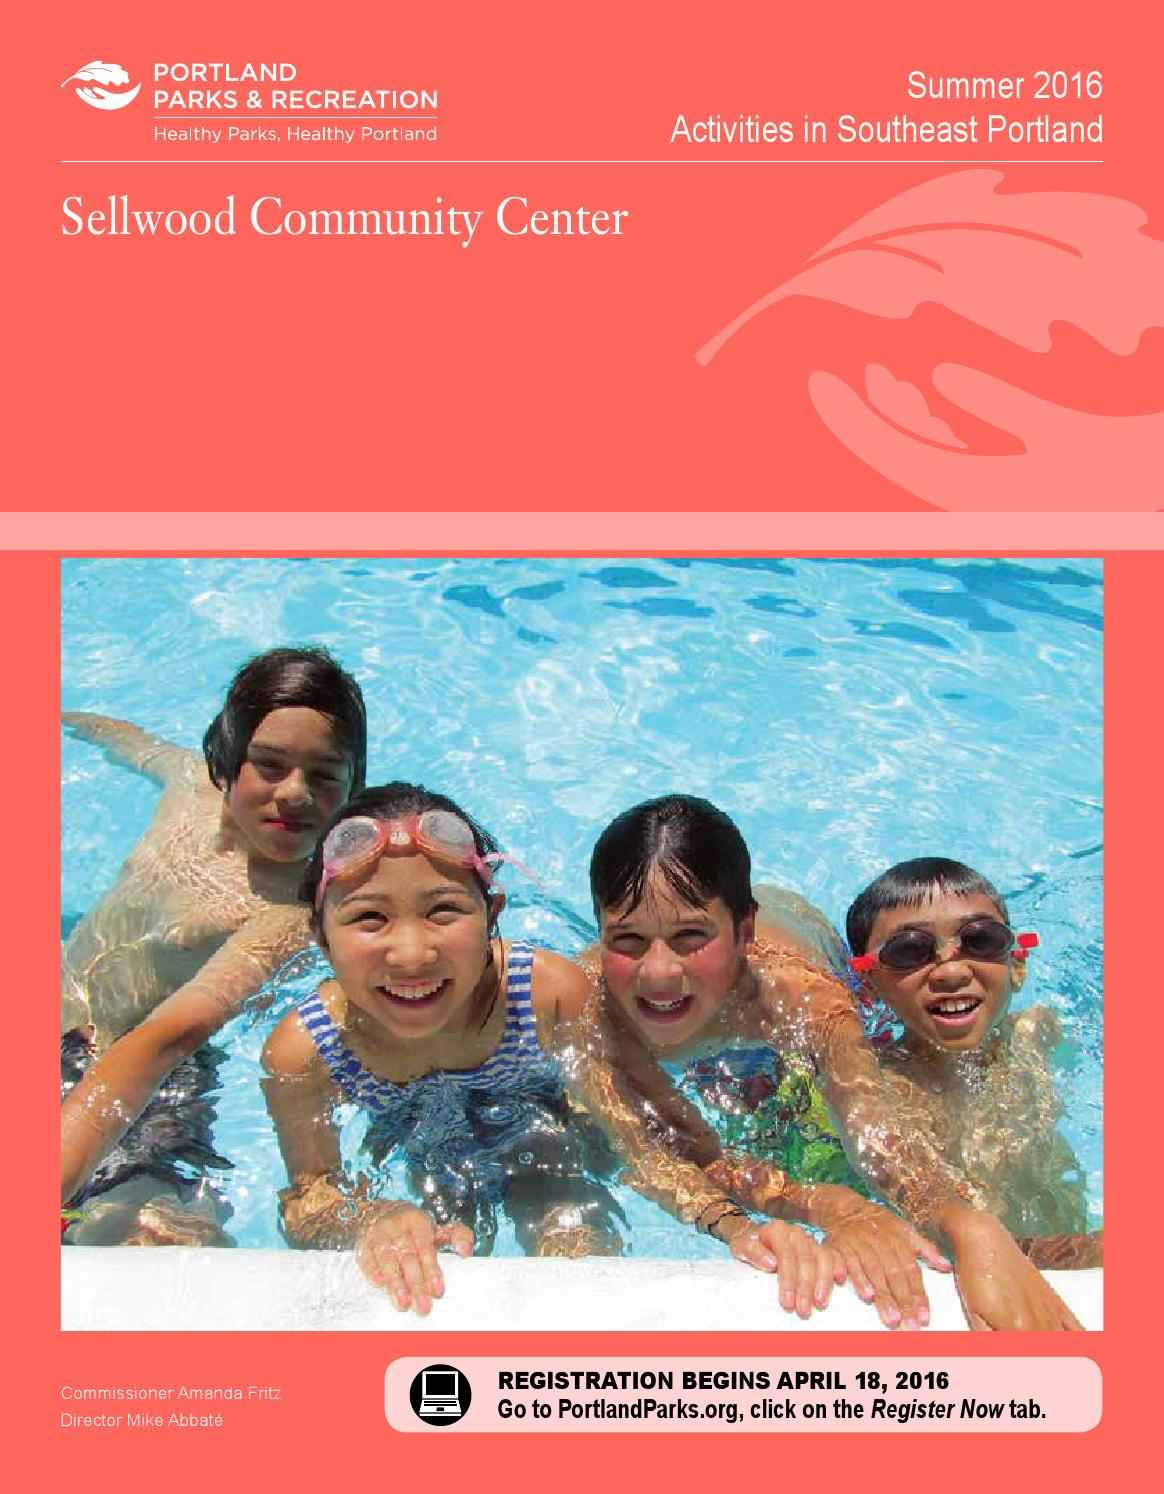 Recreation centers Perm - where you can relax in comfort